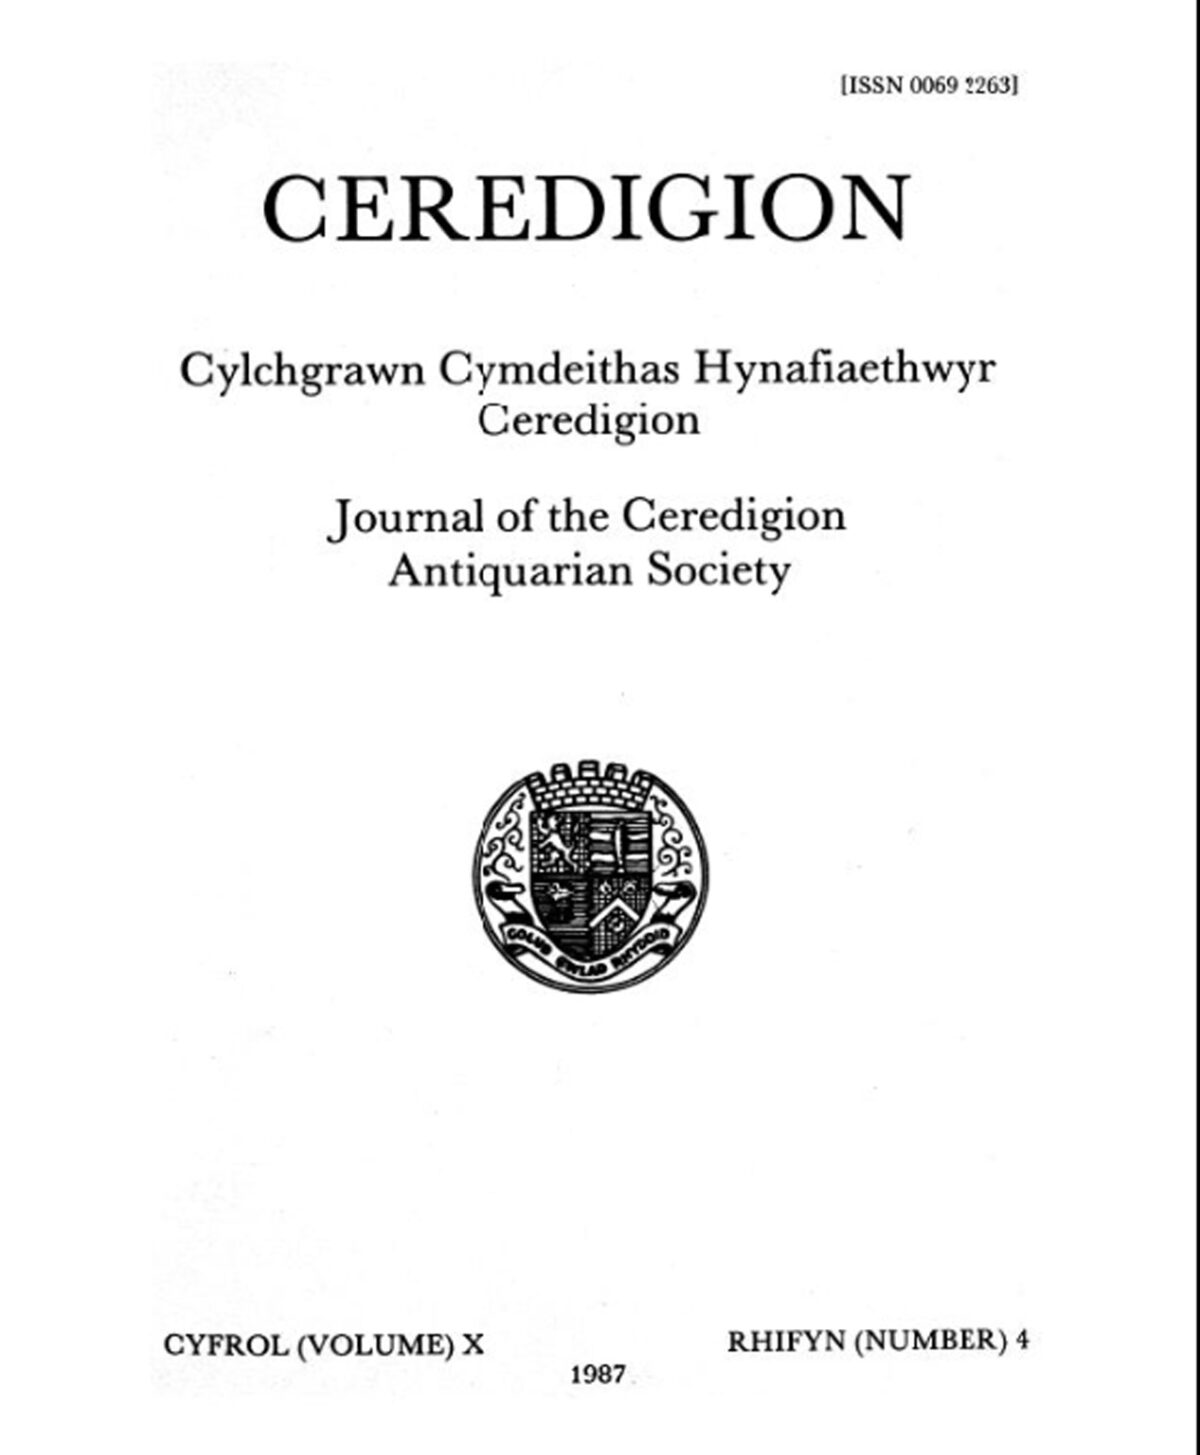 Ceredigion – Journal of the Cardiganshire Antiquarian Society, 1987 Vol X No 4